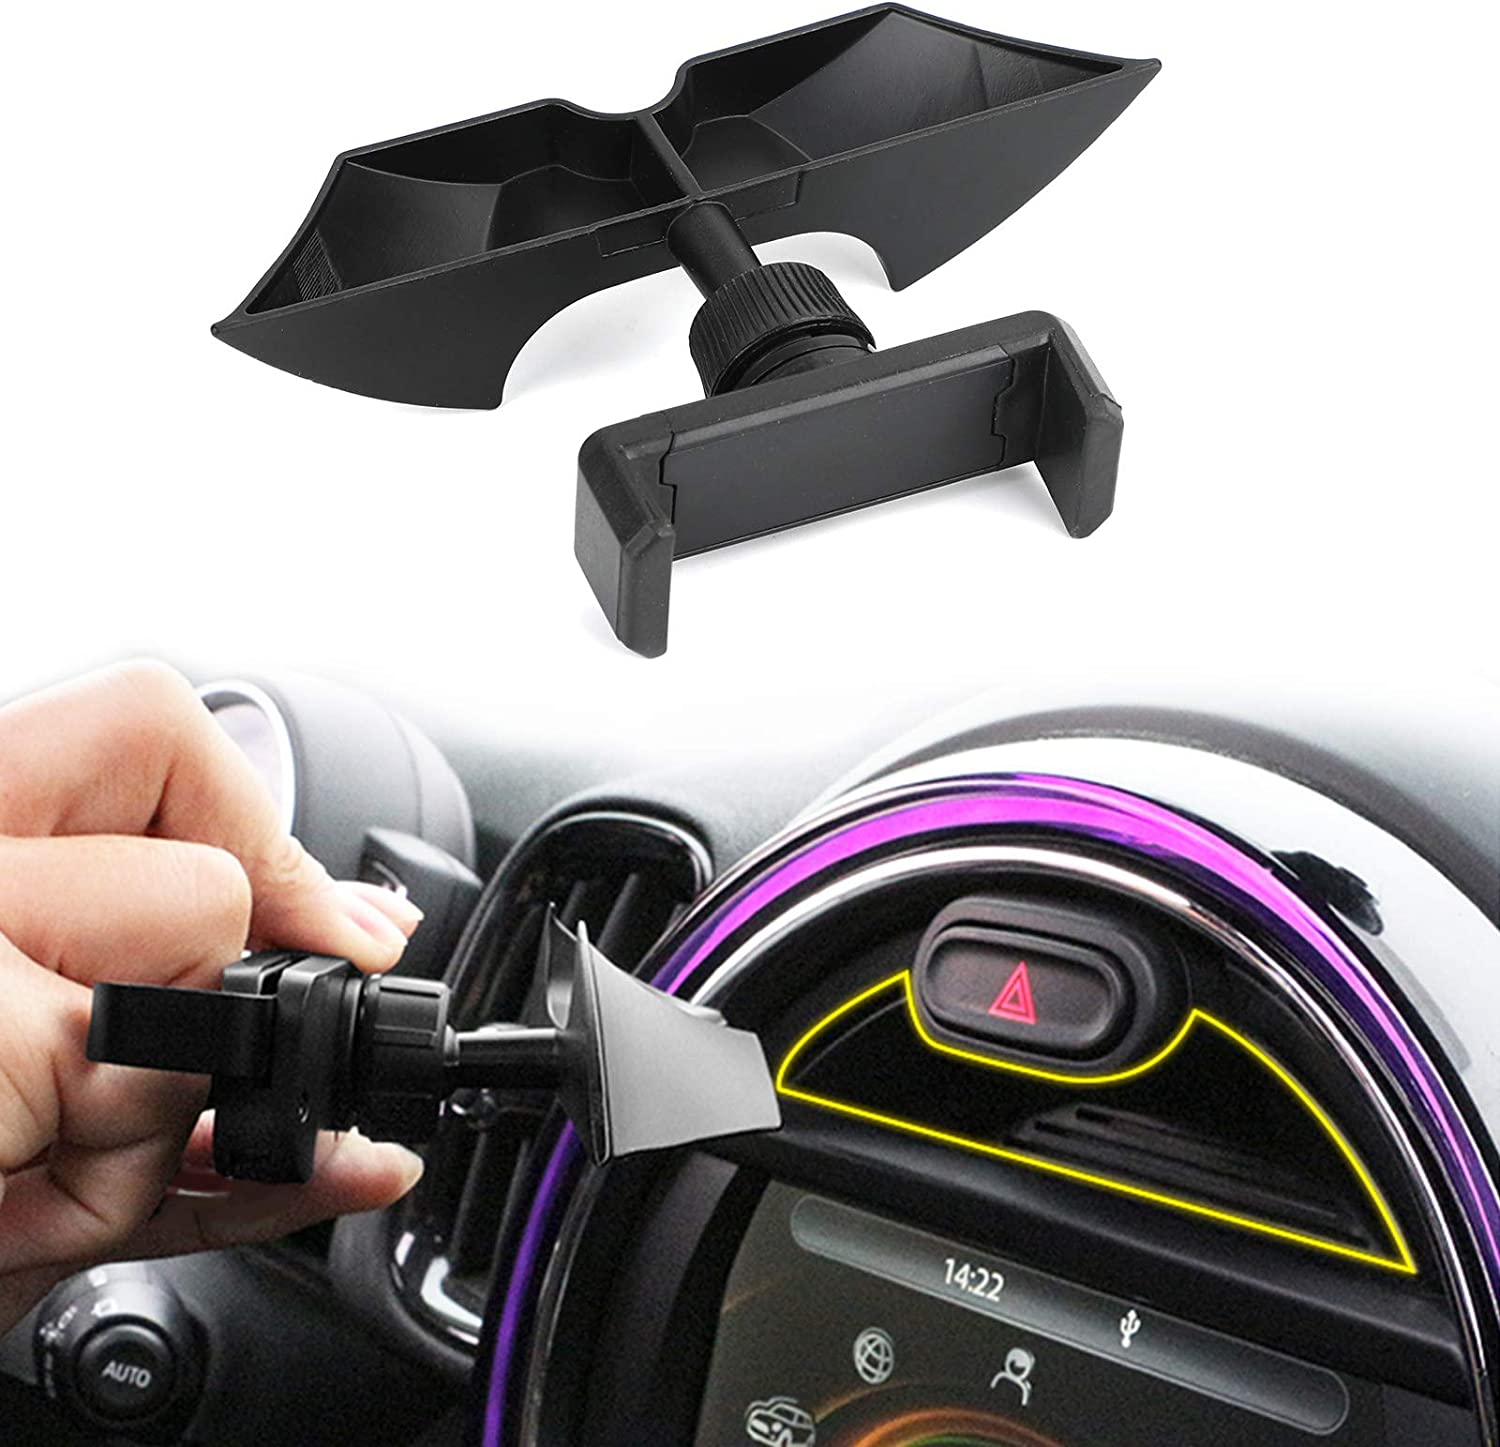 Topteng Dashboard Phone Holder for Car, Dashboard Slot Phone Holder Mount fits for BMW Mini Cooper F54 F55 F56 F57 F60